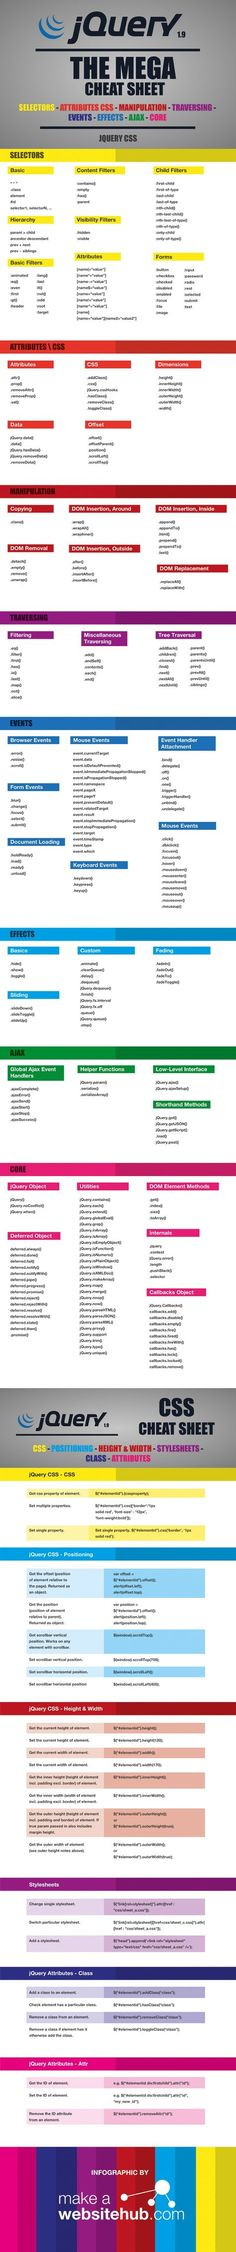 jQuery-Cheat-Sheet. (Grafik: MakeAWebsiteHub.com)…